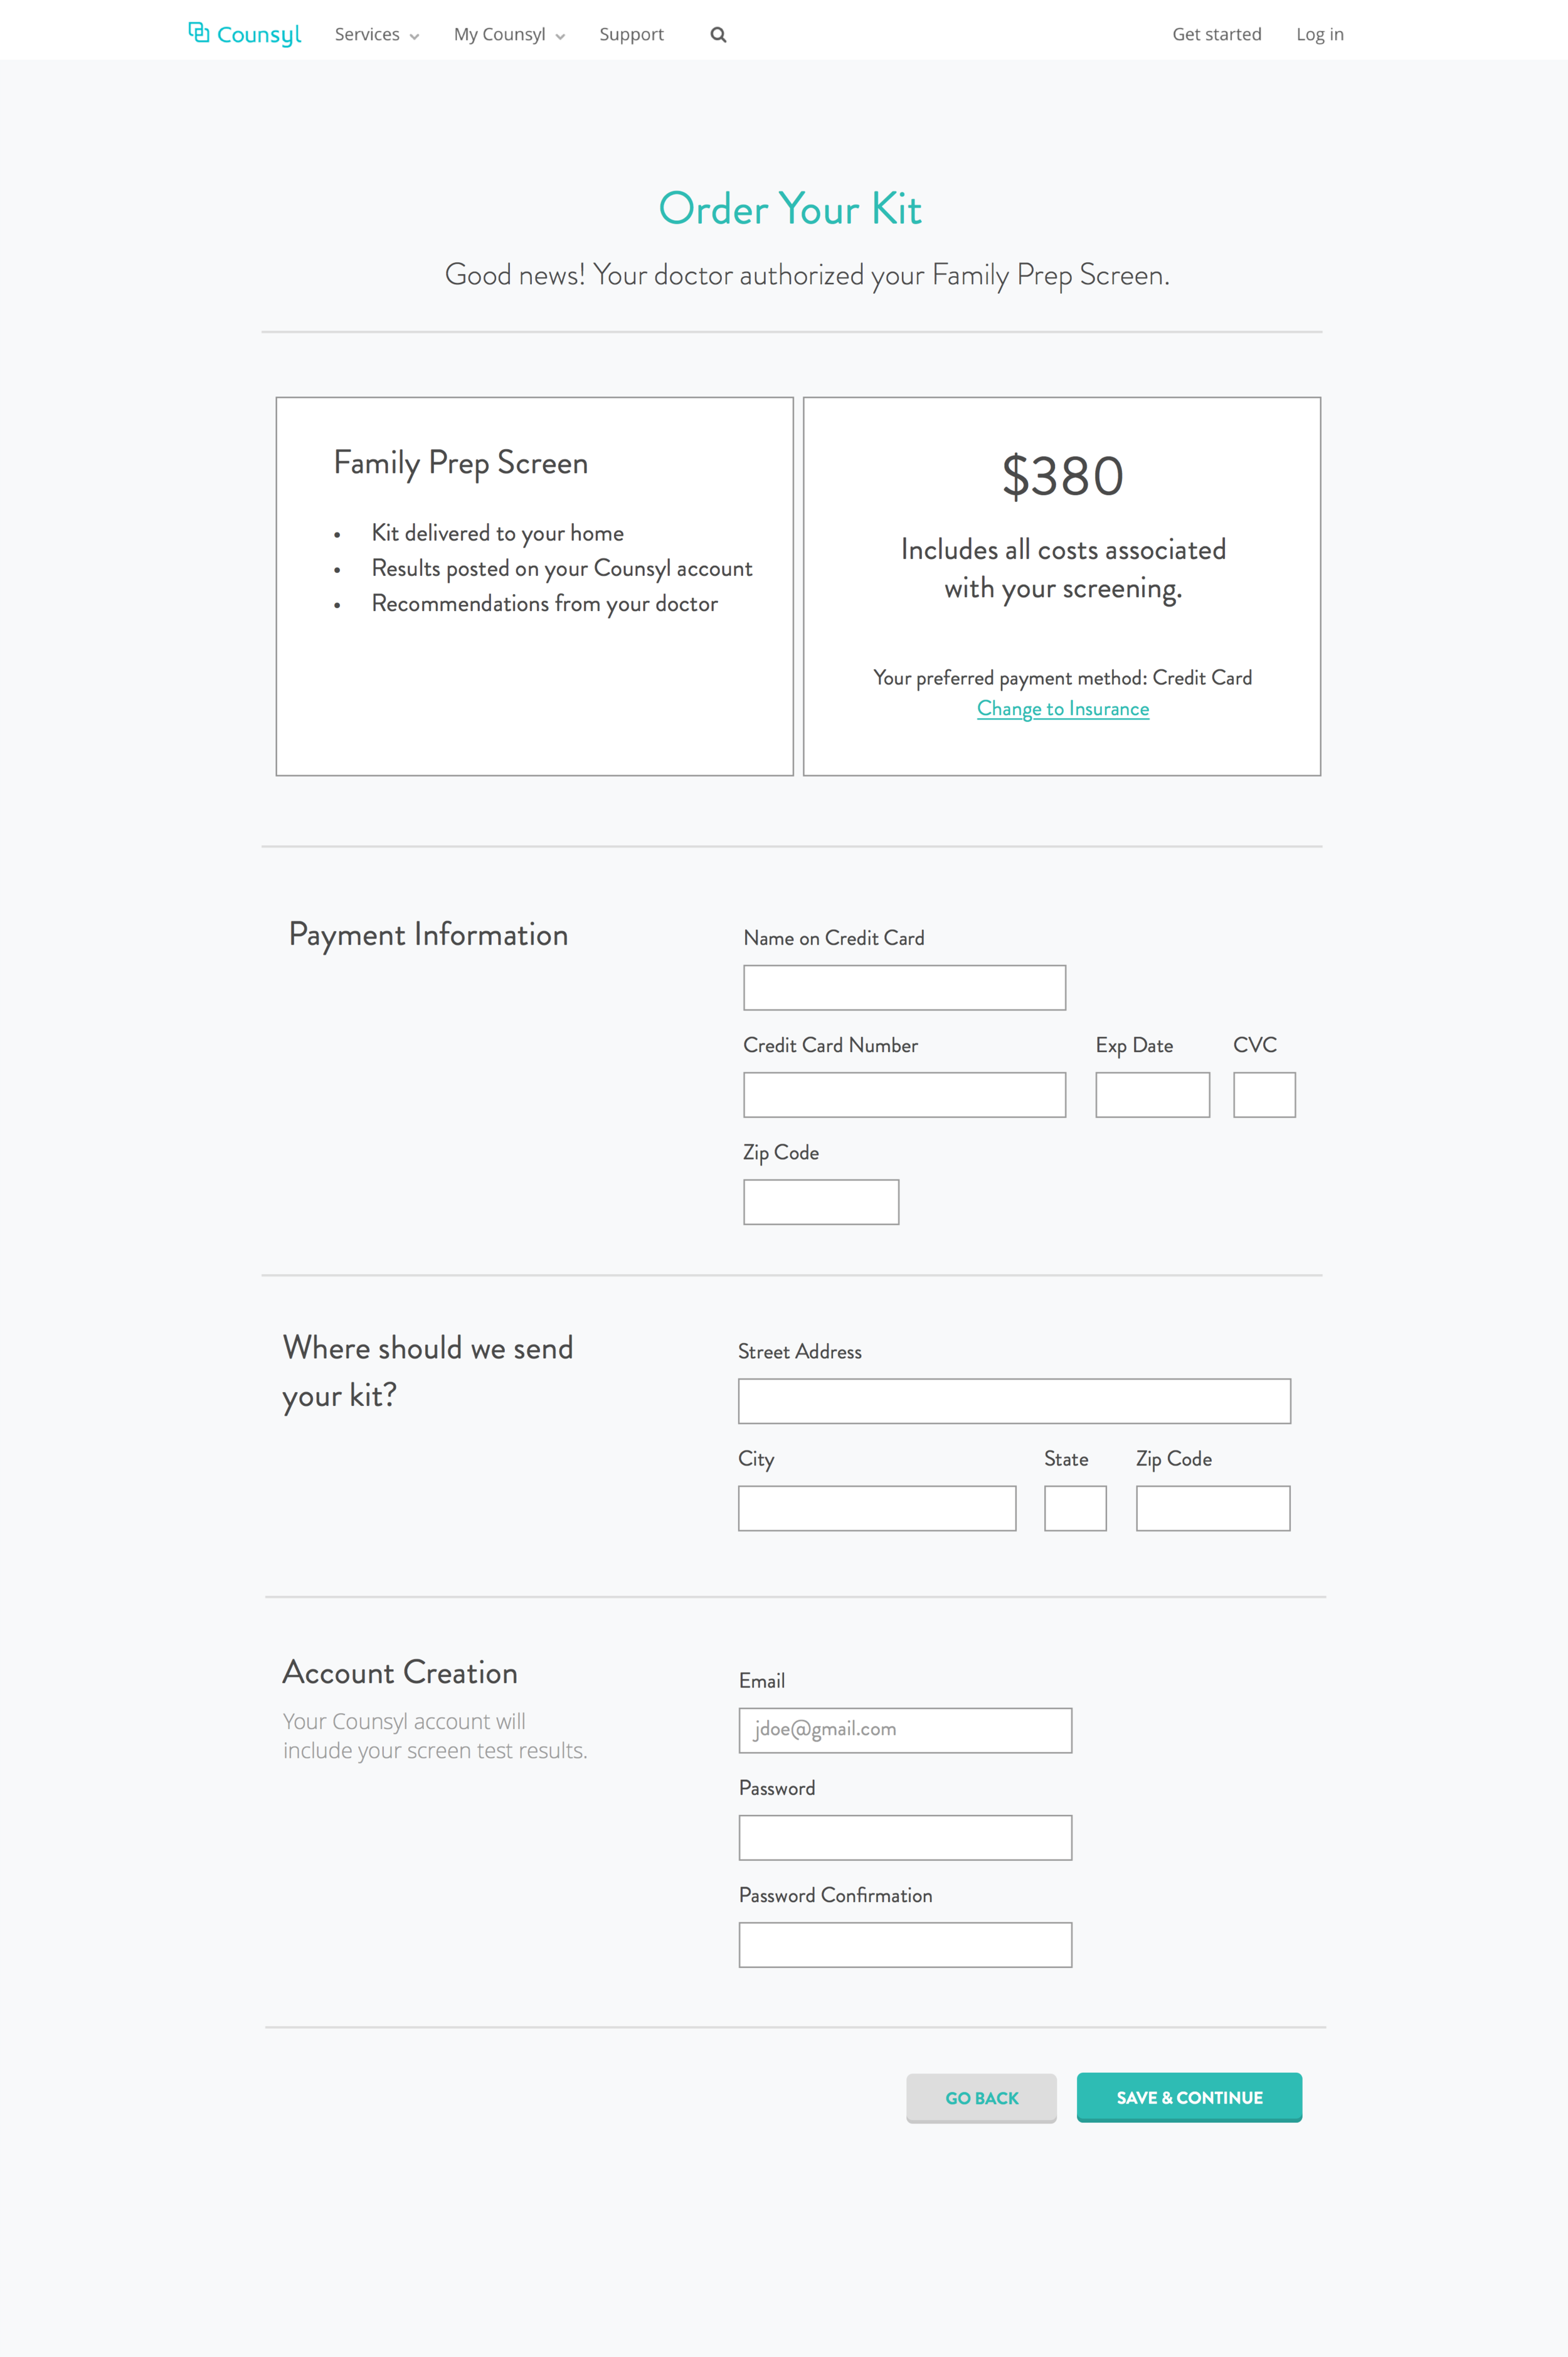 Order your kit credit card.png